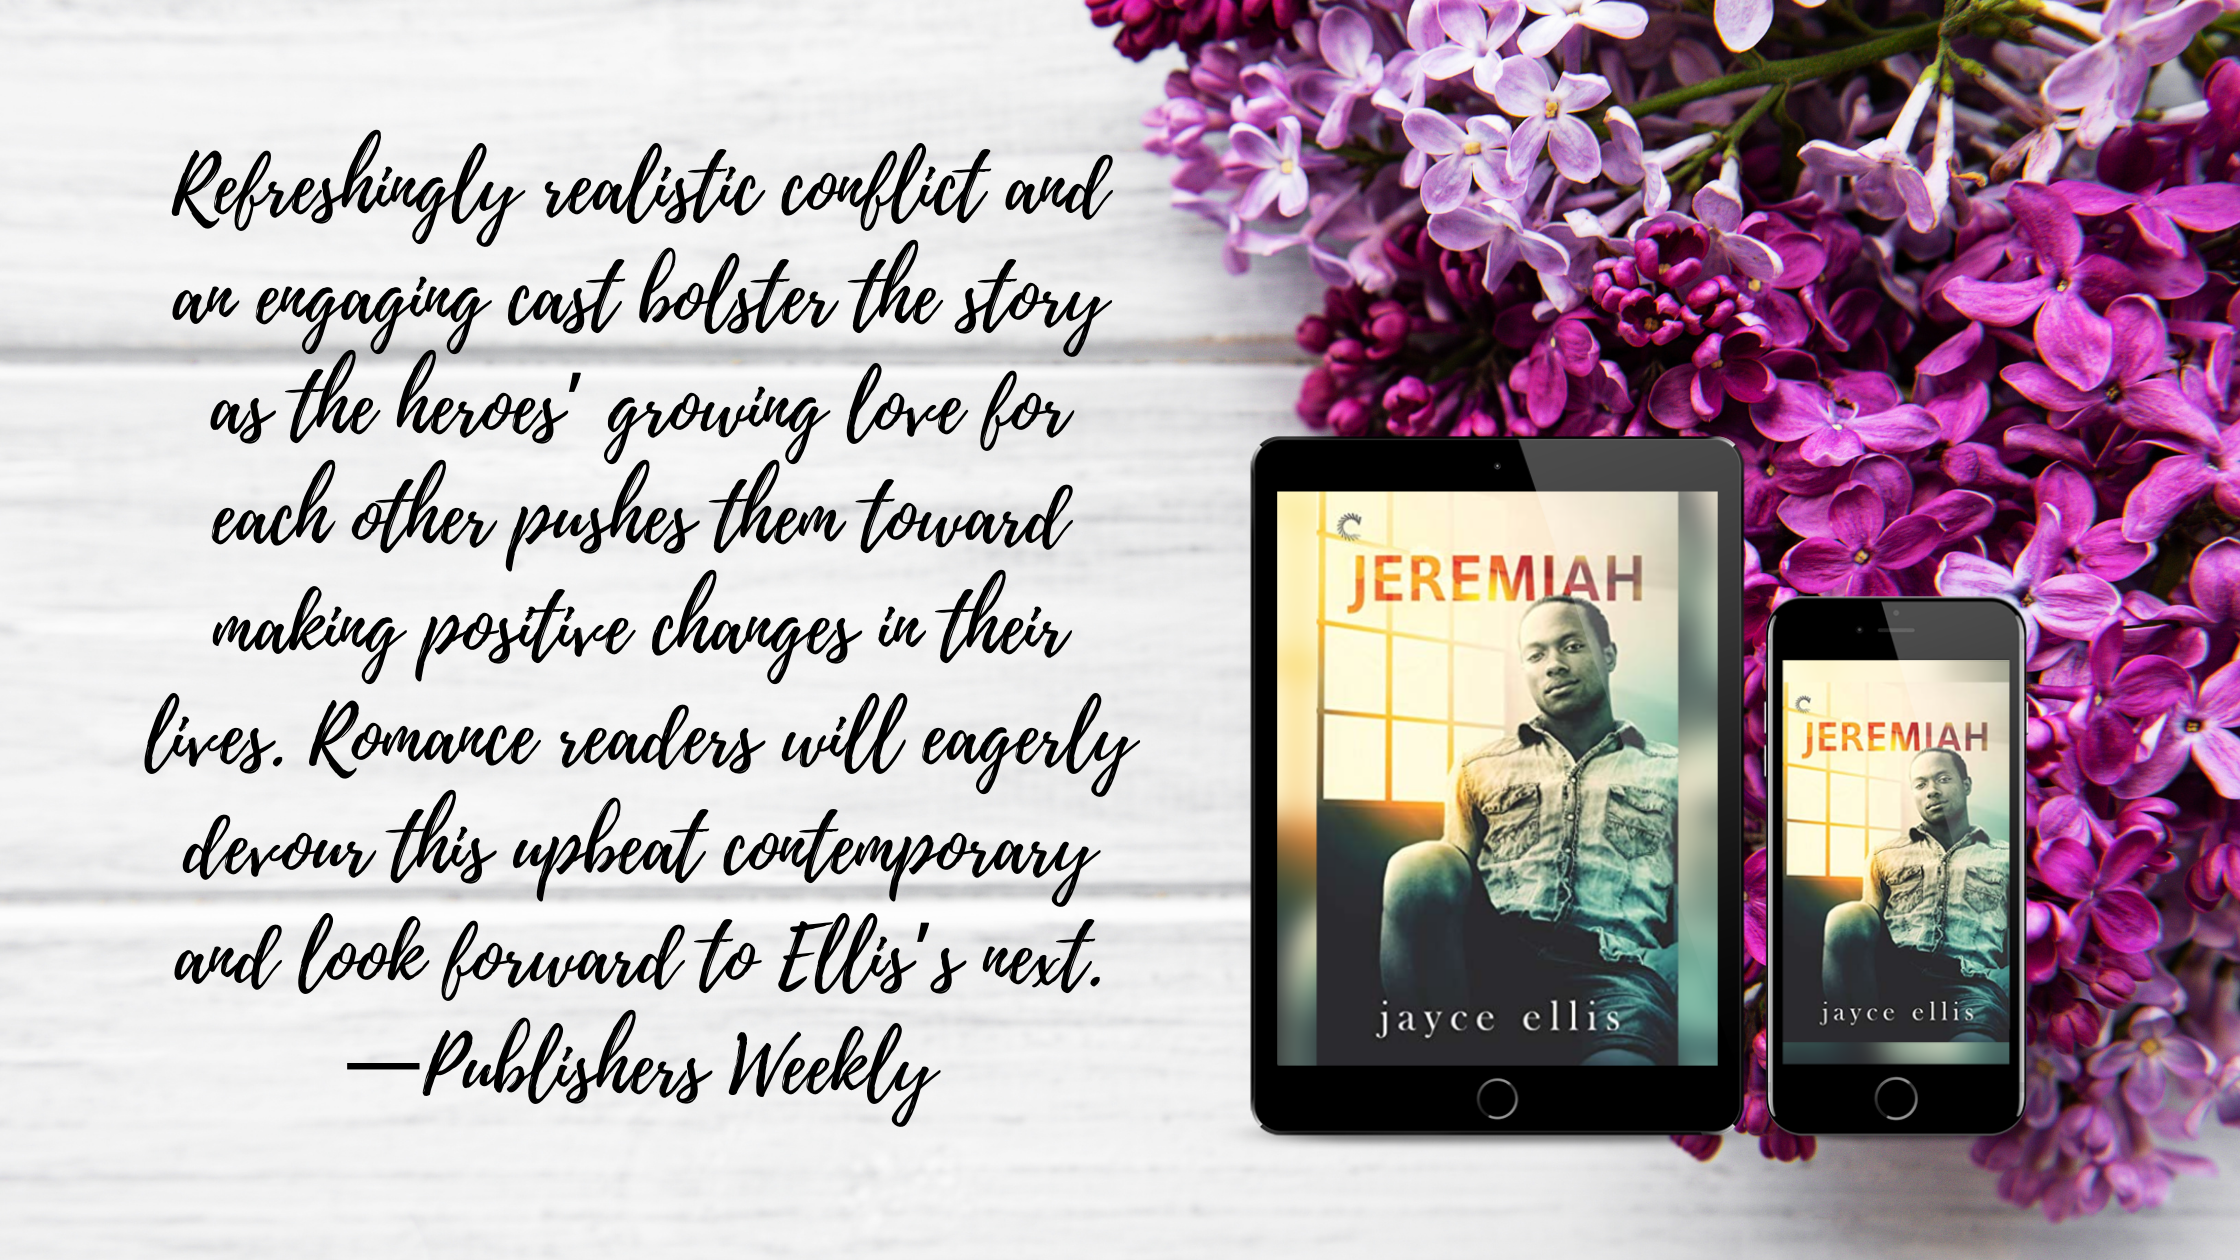 Cover of Jeremiah, by Jayce Ellis. Refreshingly realistic conflict and an engaging cast bolster the story as the heroes' growing love for each other pushes them toward making positive changes in their lives. Romance readers will eagerly devour this upbeat contemporary and look forward to Ellis's next.